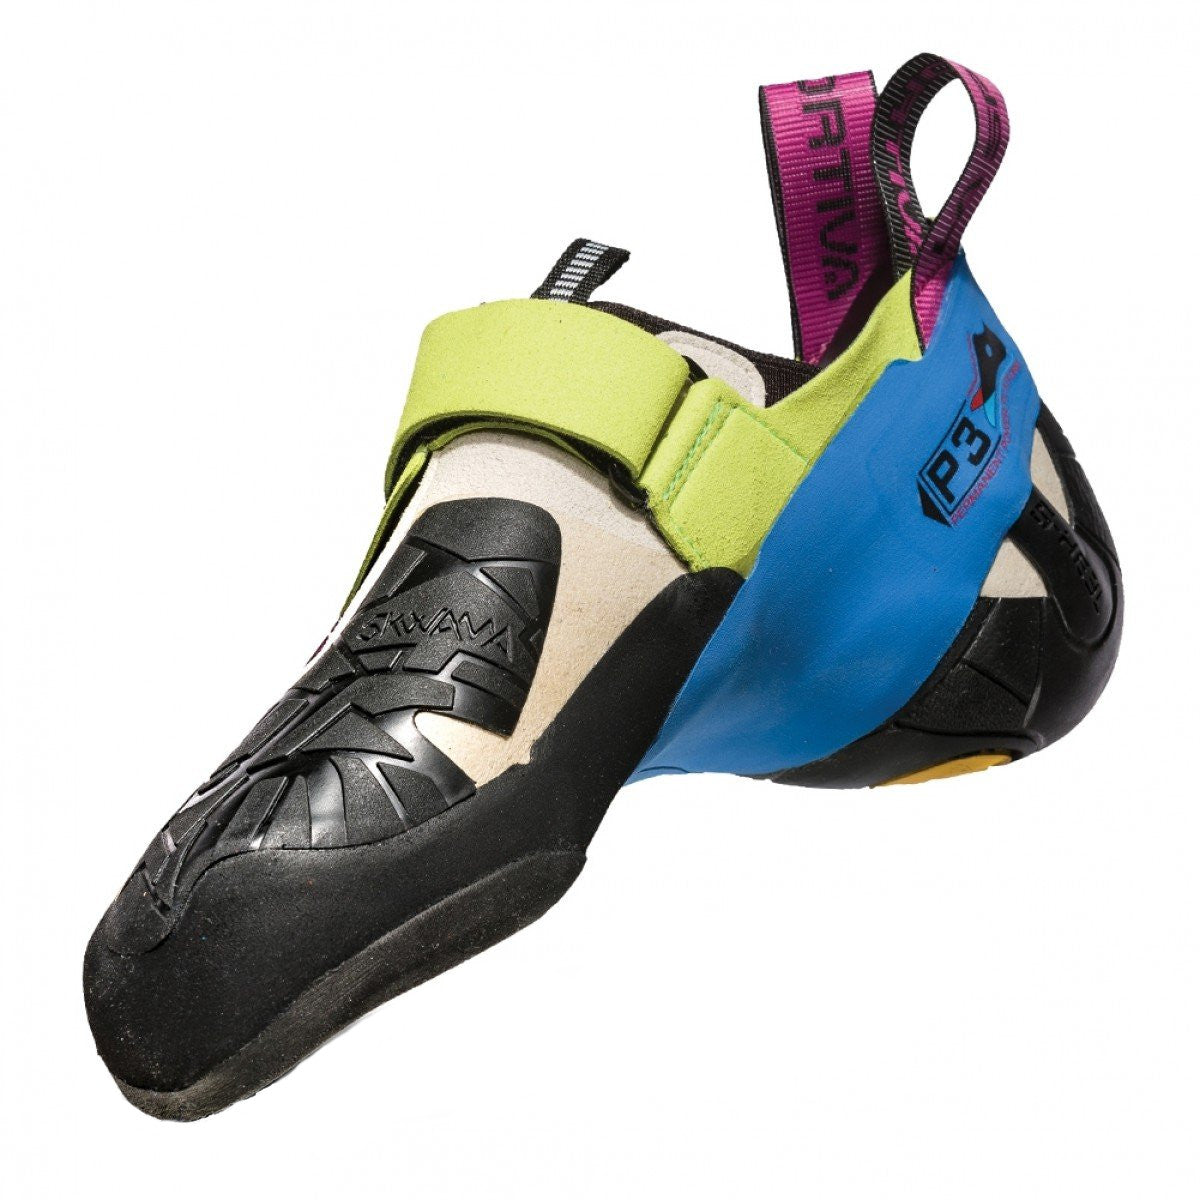 La Sportiva Skwama Women's climbing shoe as seen from the side.